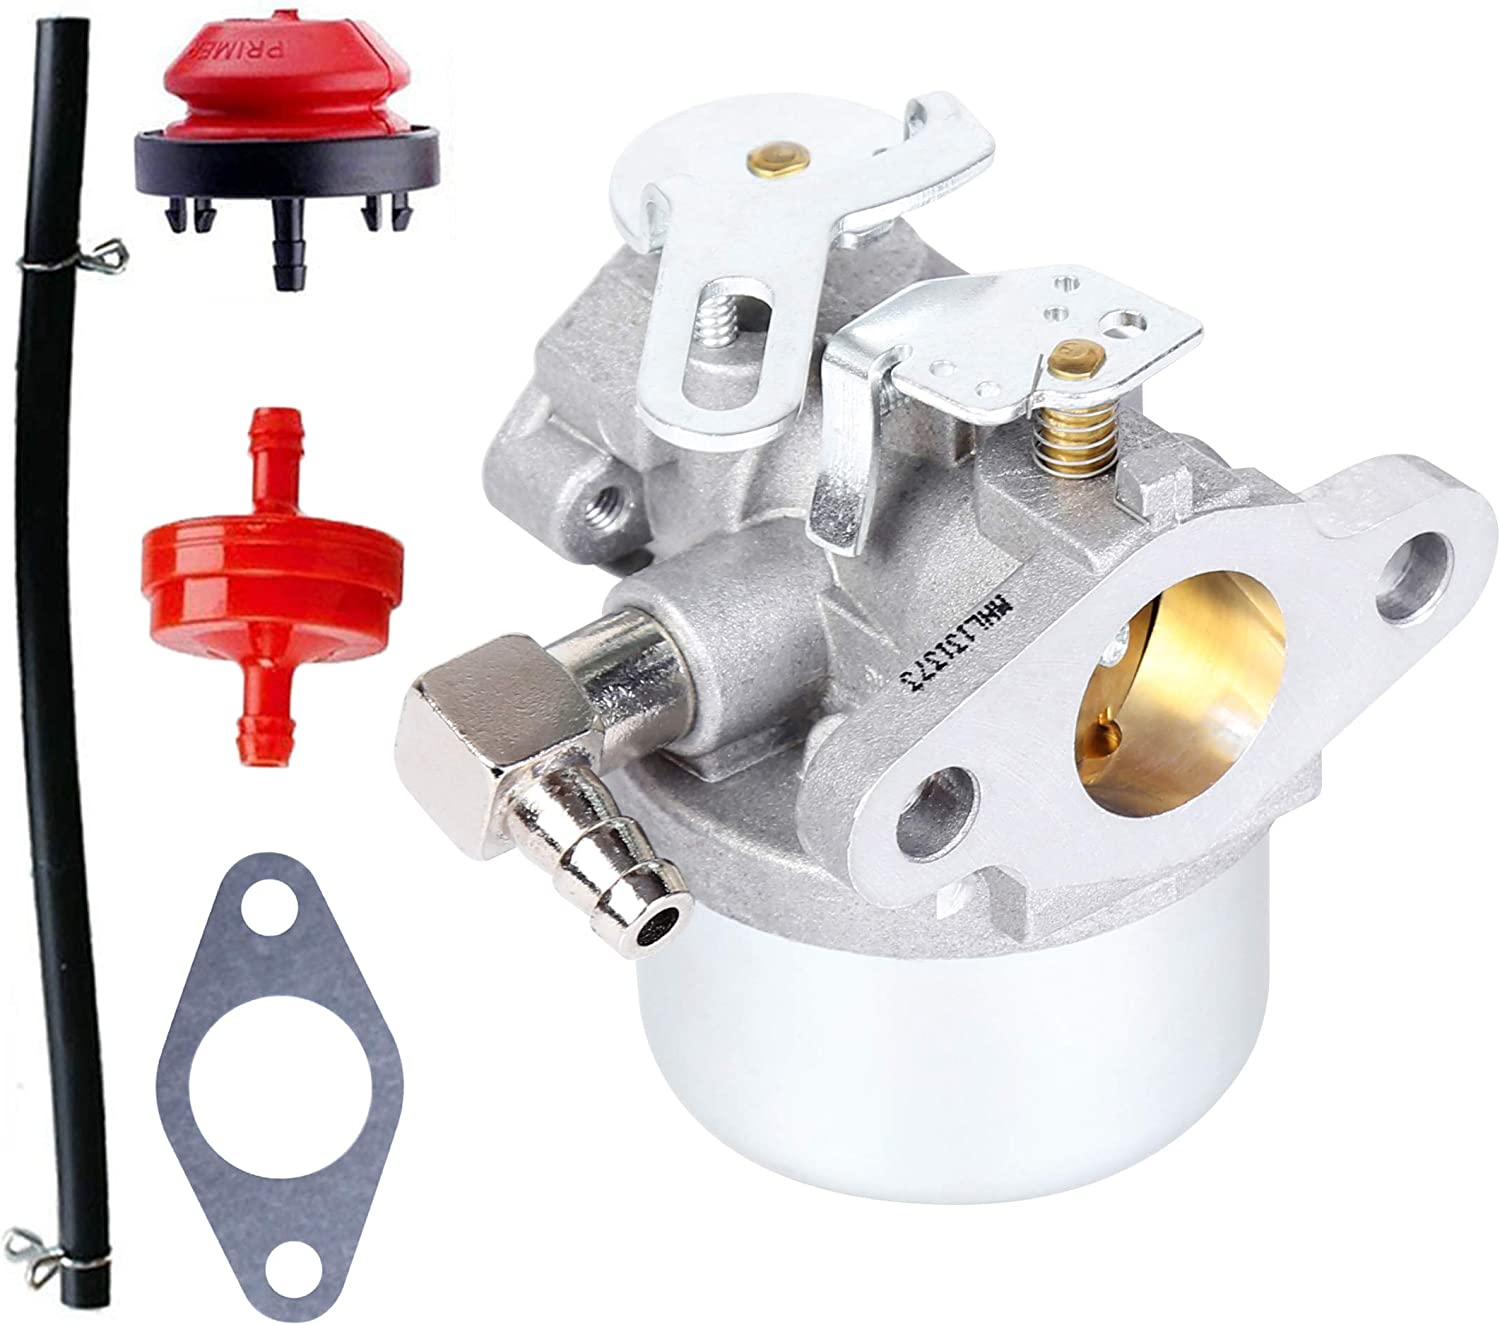 Pro Chaser 932006 640084B 5HP 6HP for Tecumseh 2021 spring and summer new Over item handling Engine Carburetor